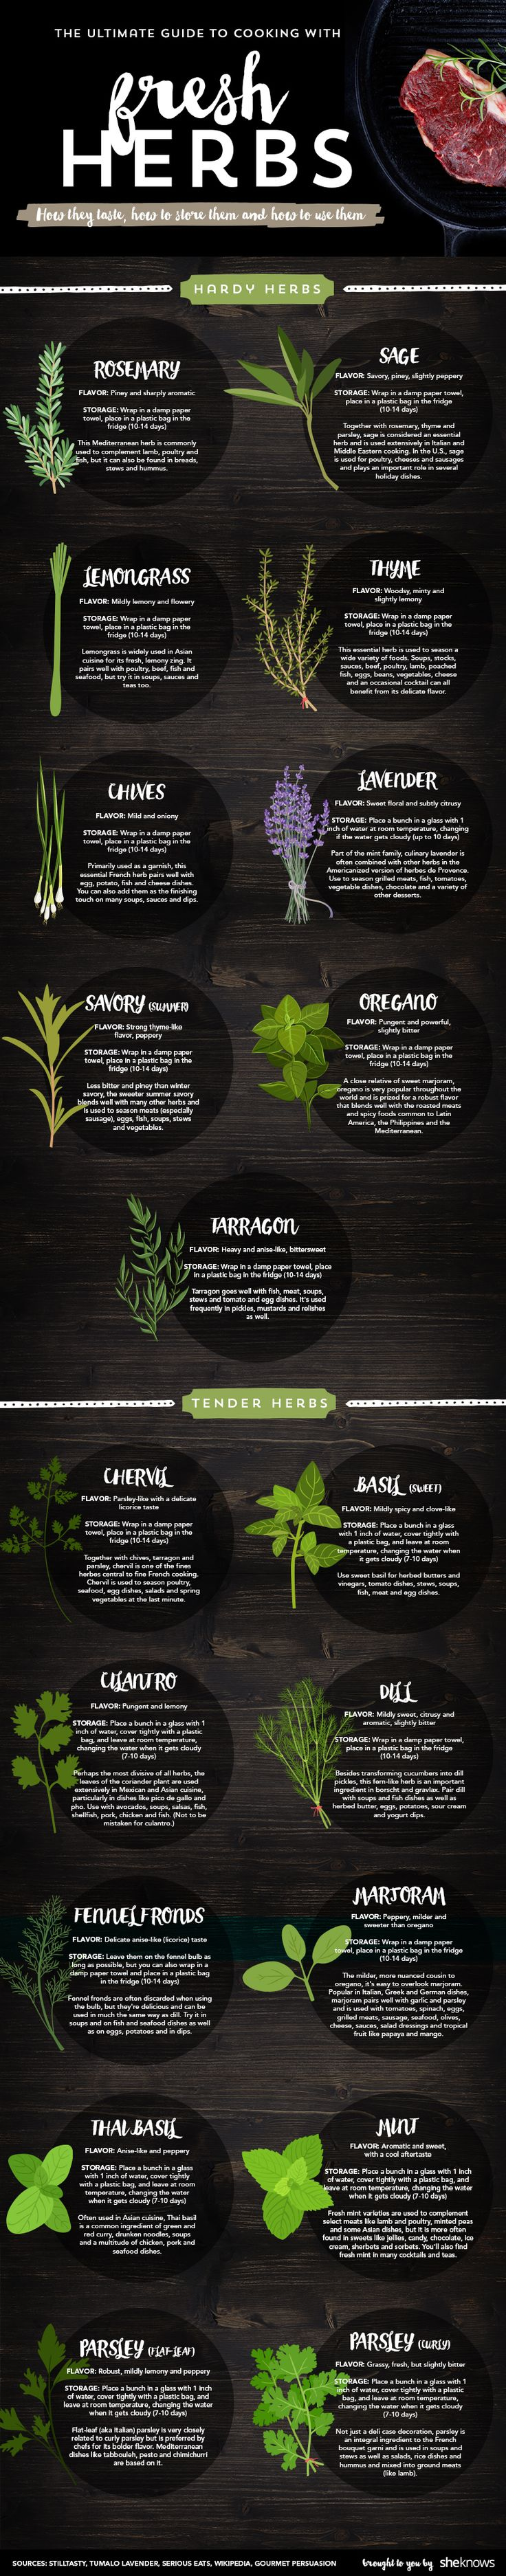 Everything you need to know about cooking with fresh herbs, all in 1 handy chart                                                                                                                                                      More